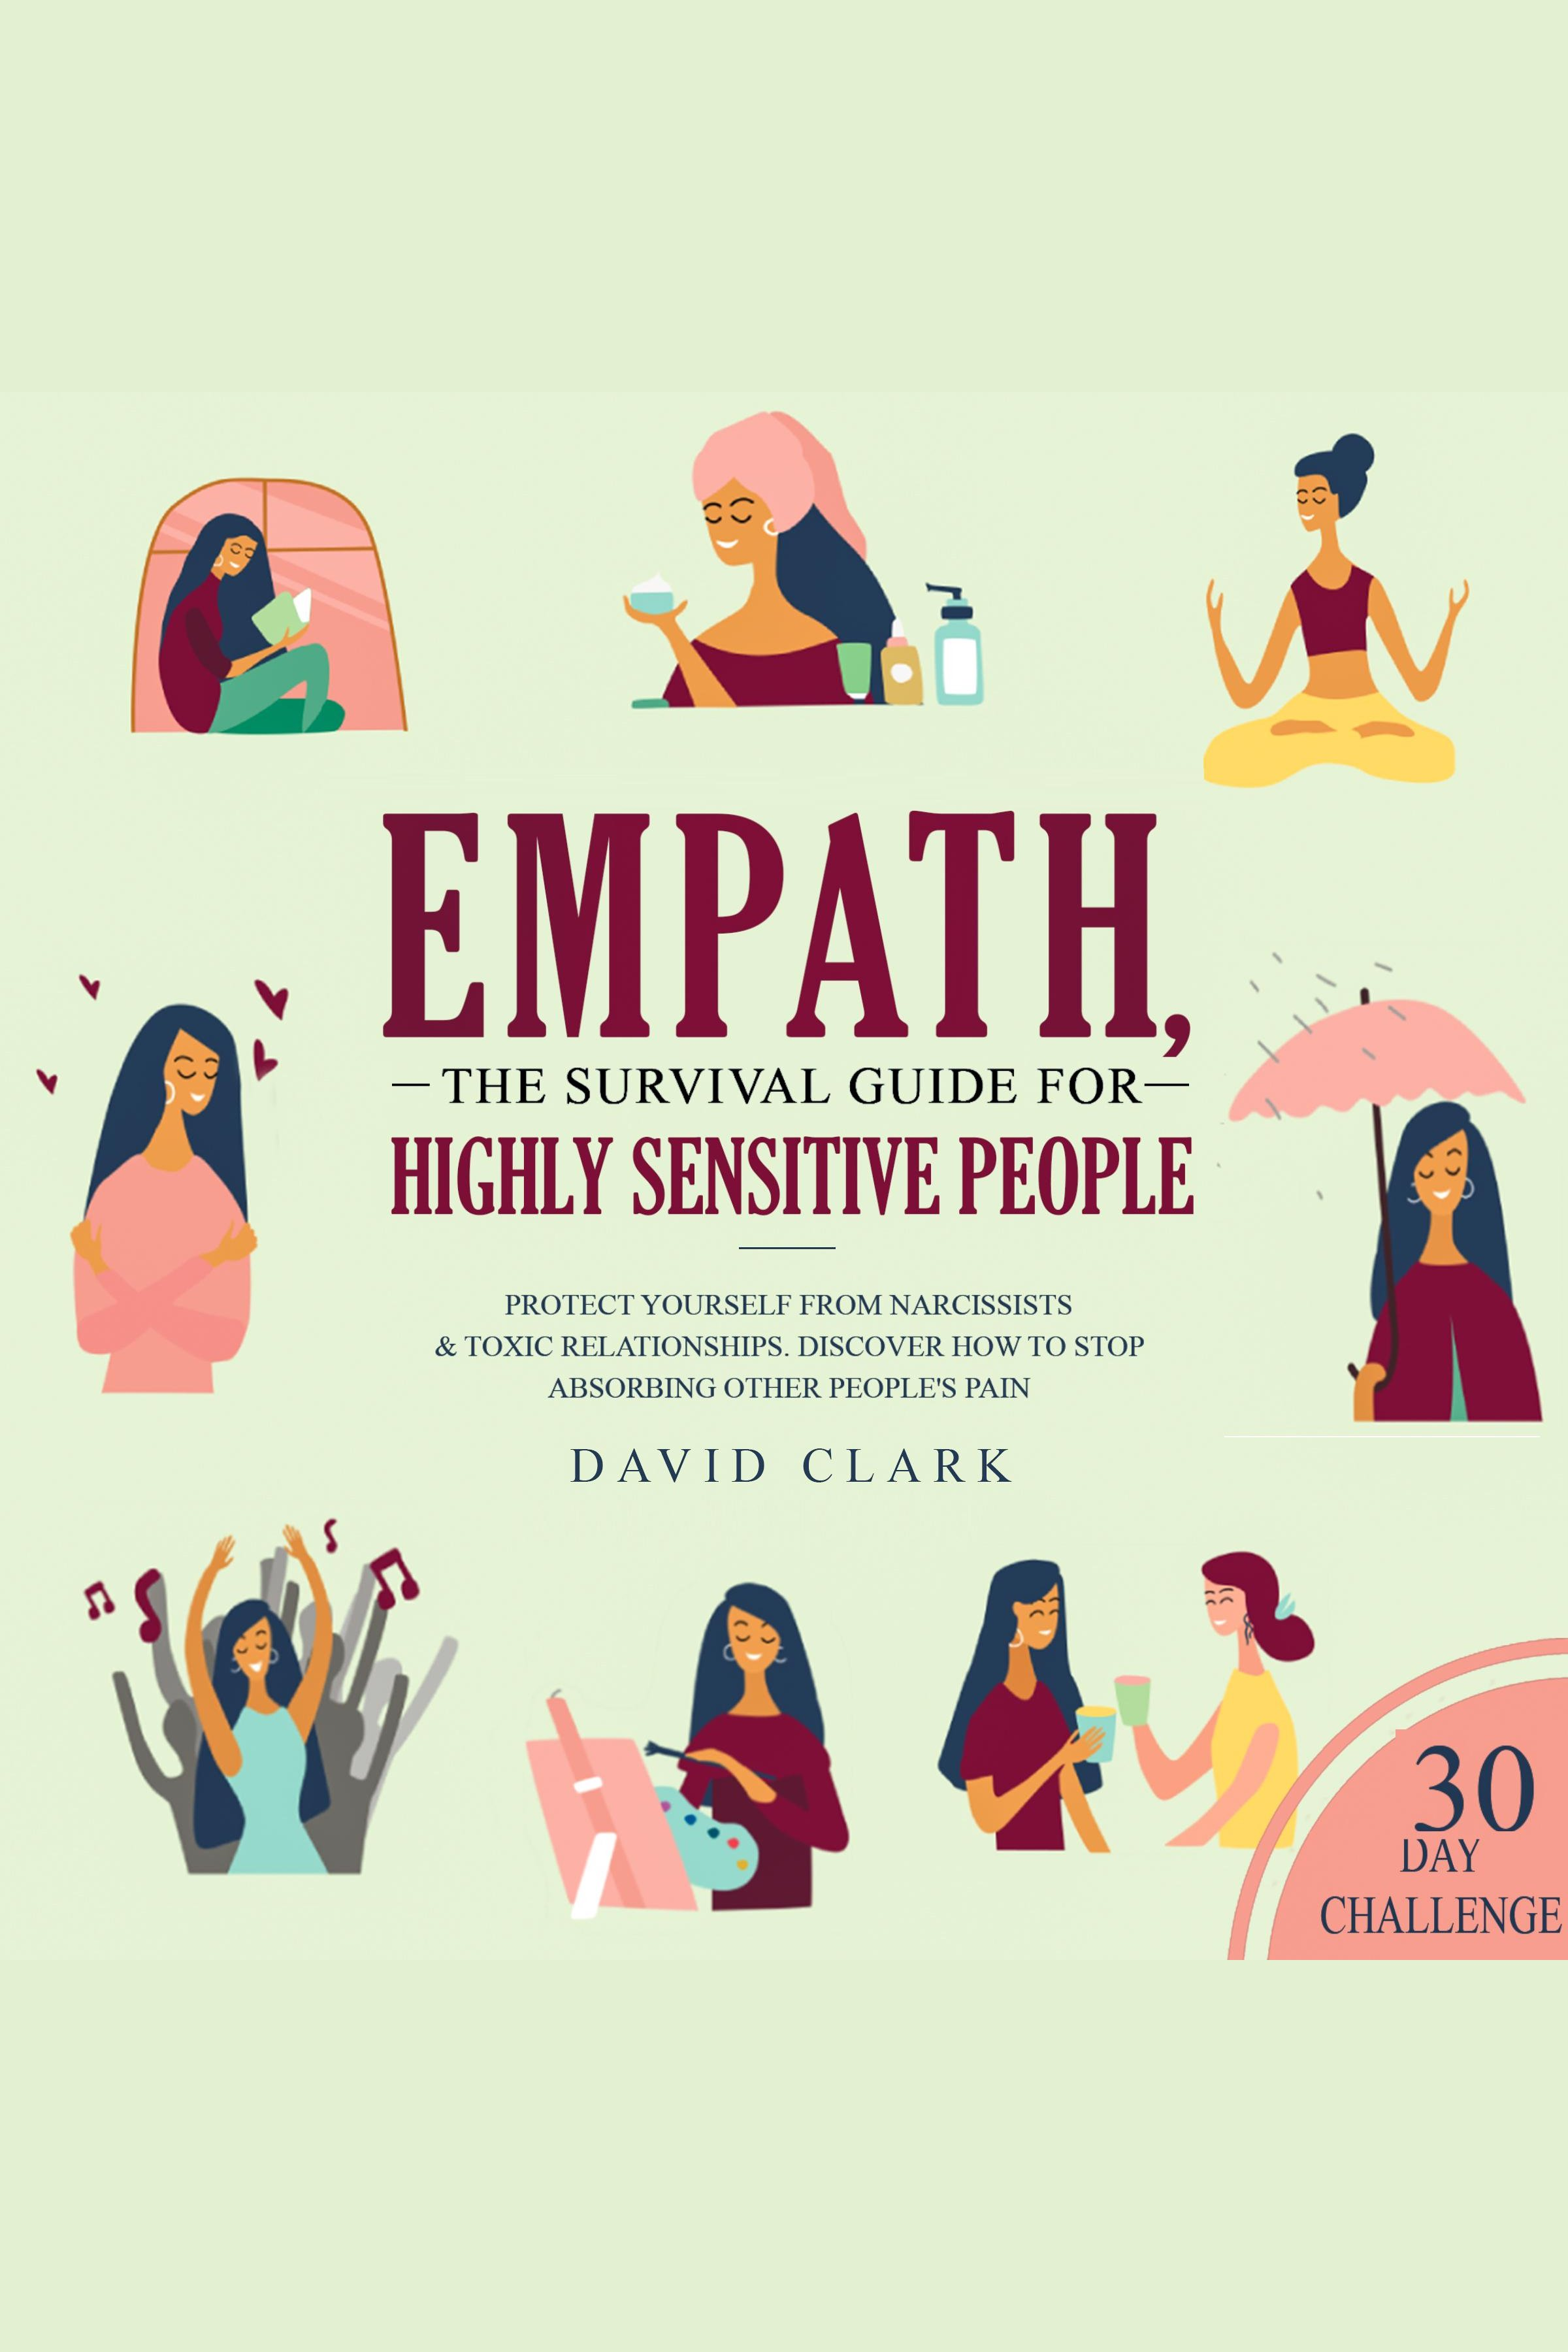 Empath: The Survival Guide For Highly Sensitive People Protect Yourself From Narcissists & Toxic Relationships. Discover How to Stop Absorbing Other People's Pain